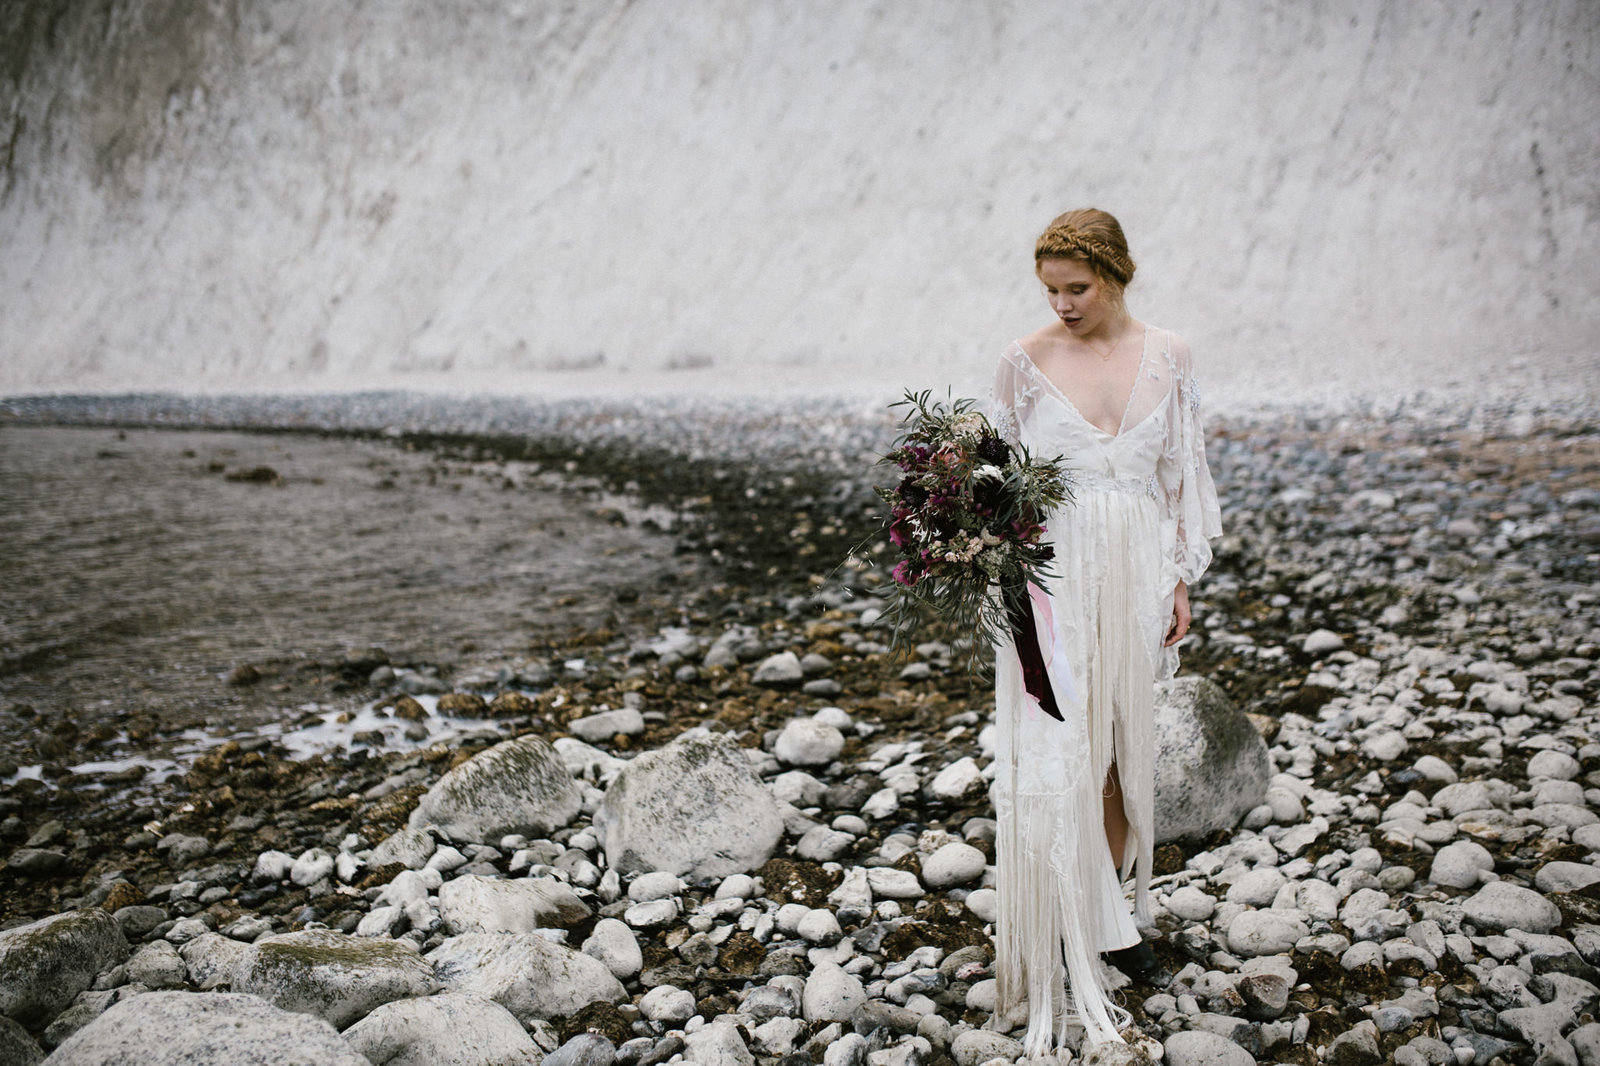 WiandaBongenPhotography-Denmark-Elopement-Wedding-44